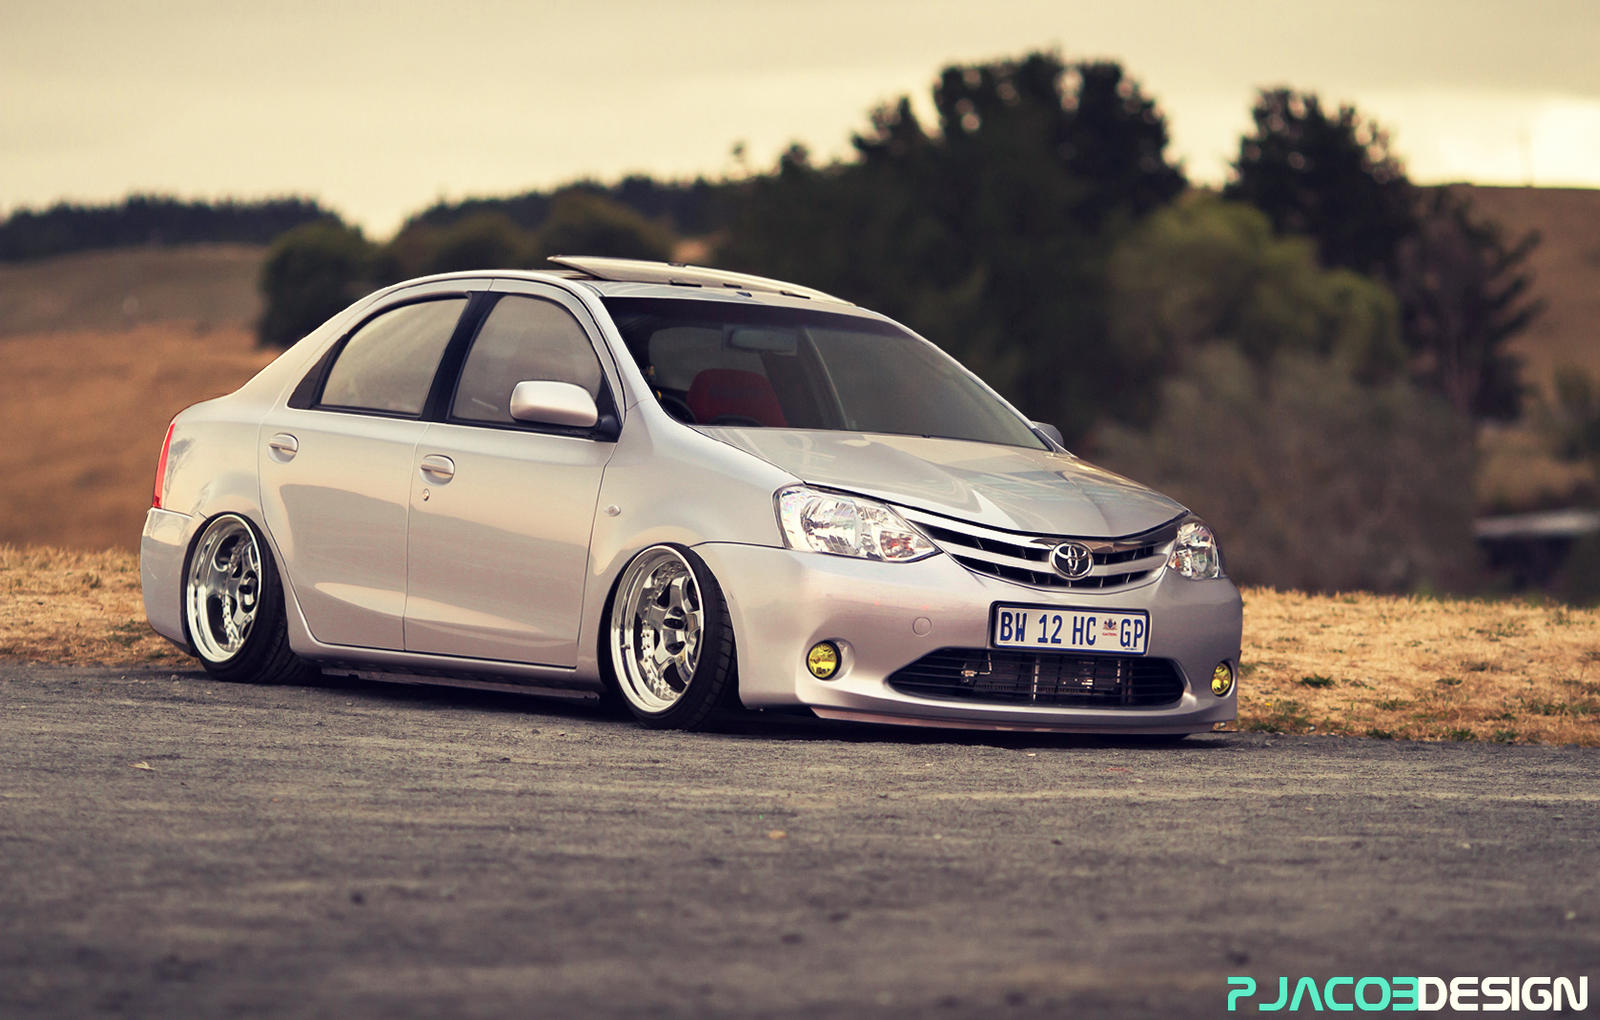 Etios Vitual TUNING by pjacobdesign on DeviantArt